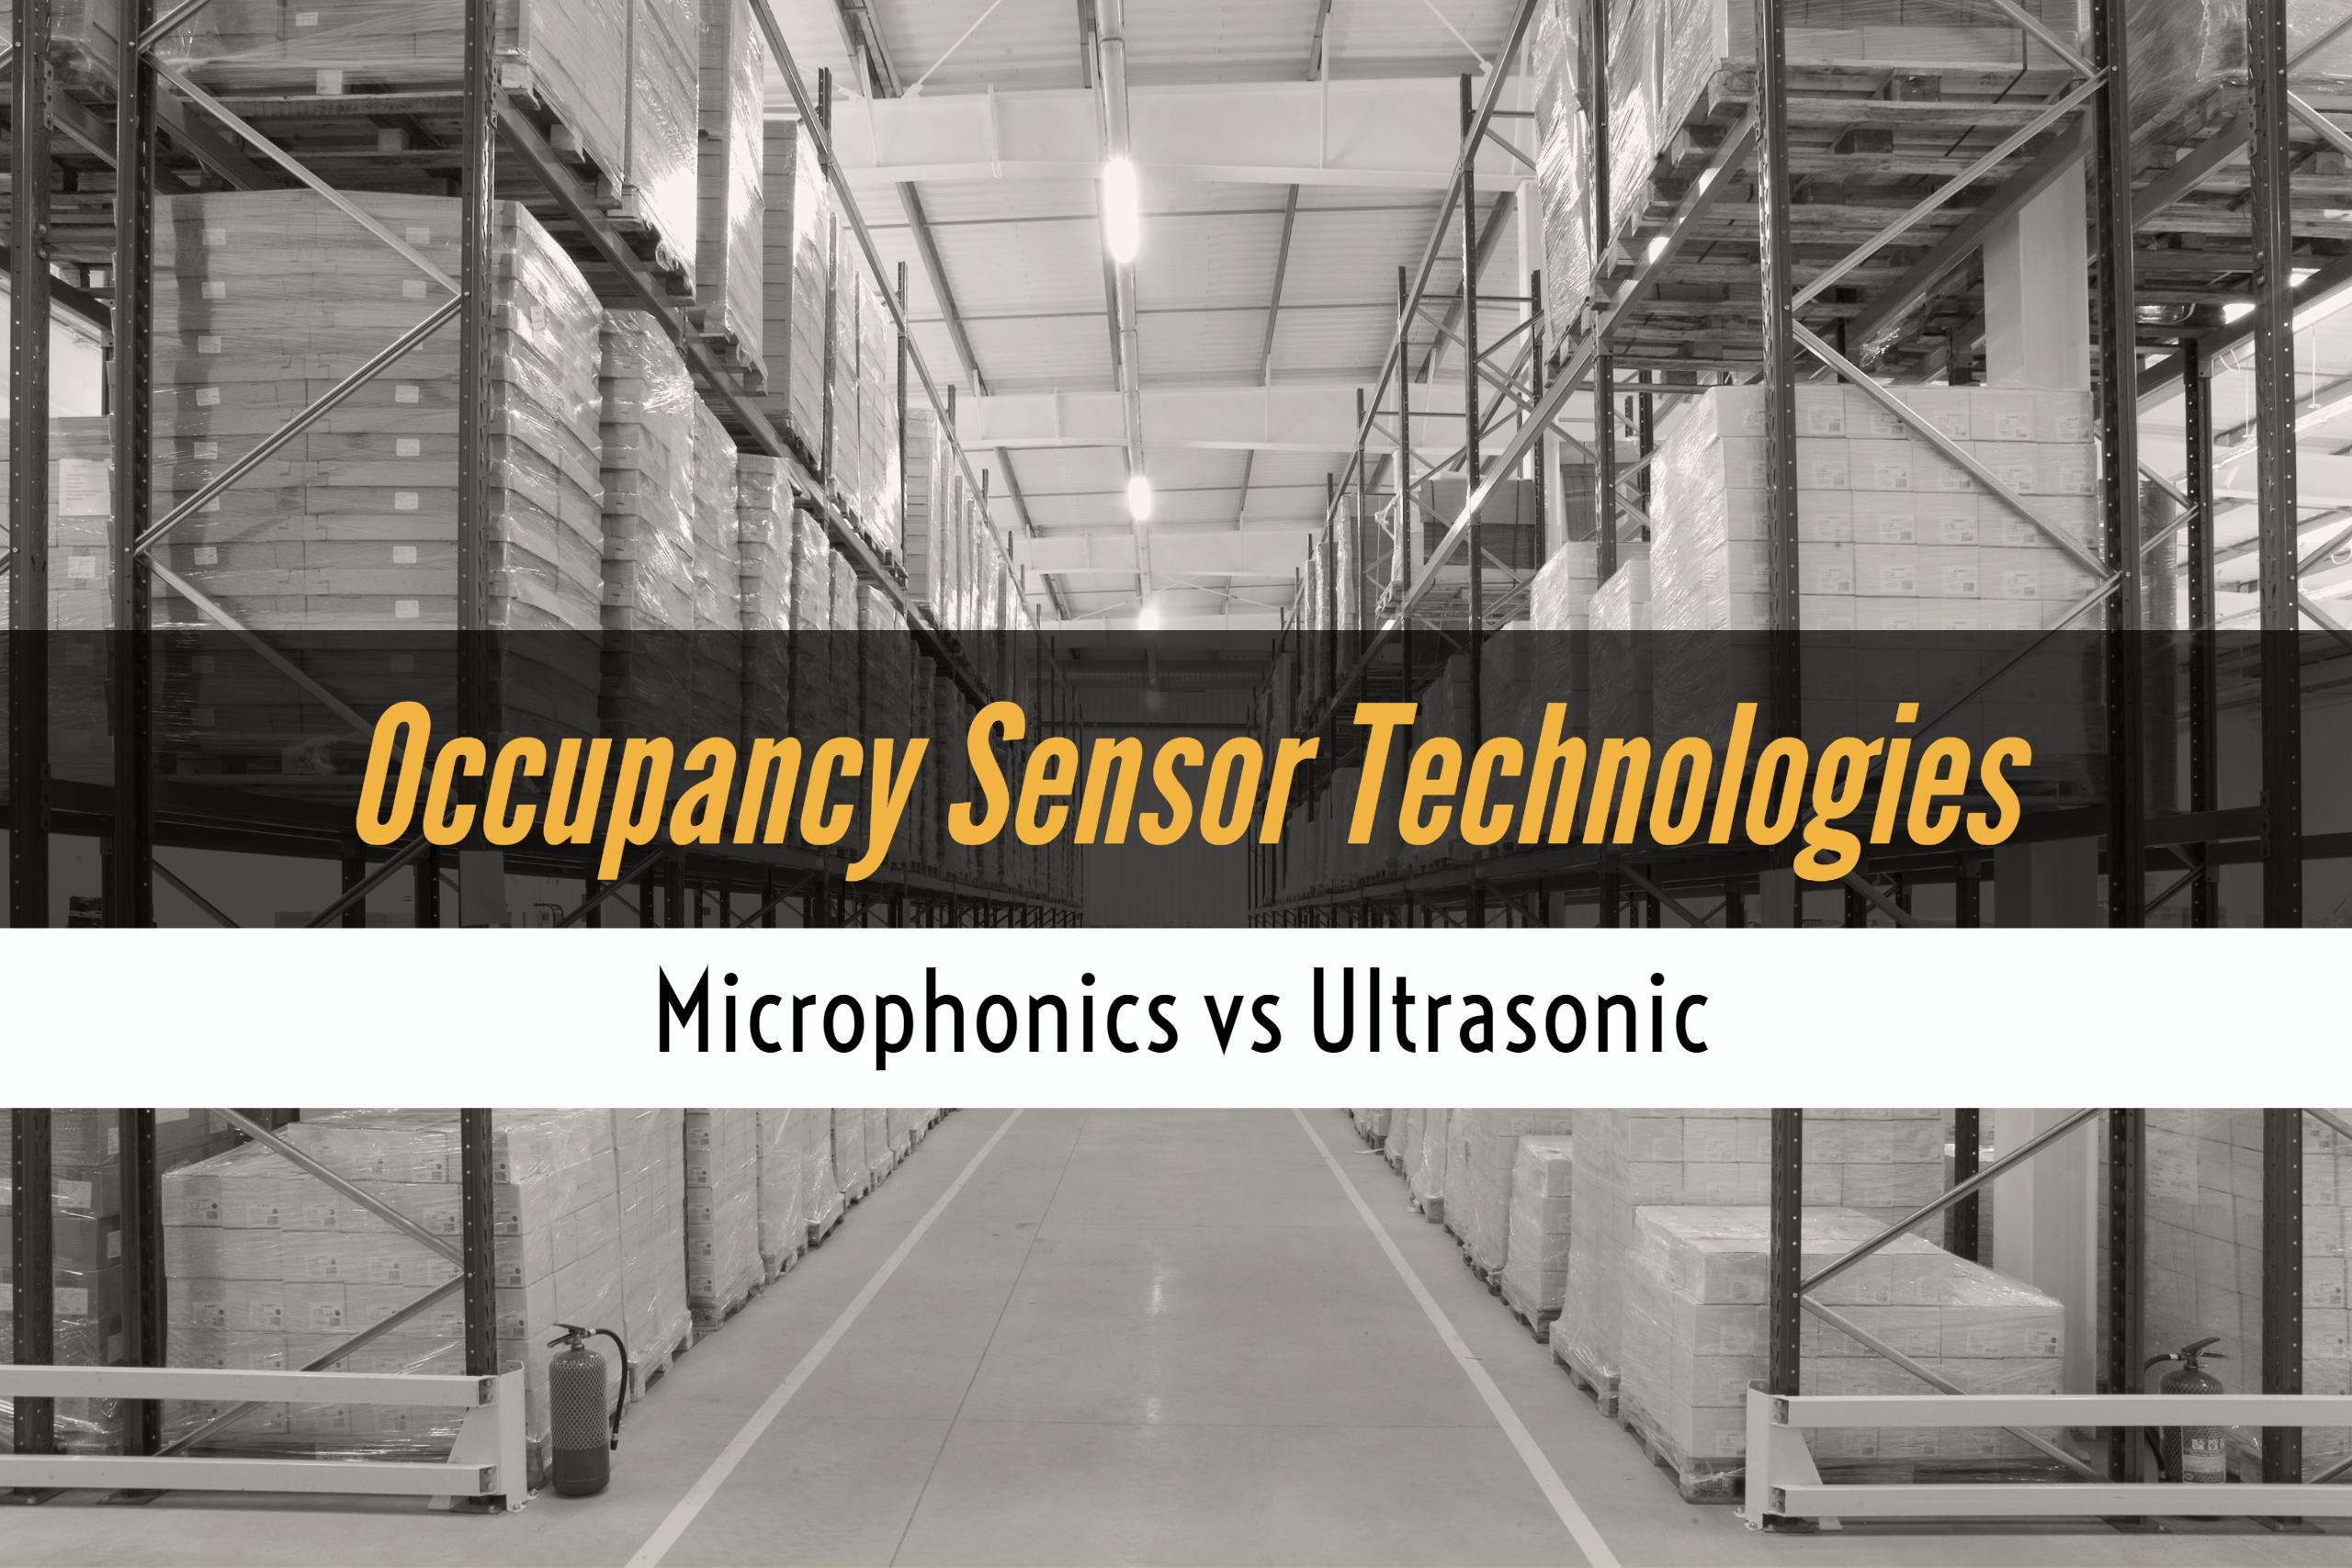 Occupancy Sensor Technologies: Microphonics vs. Ultrasonic